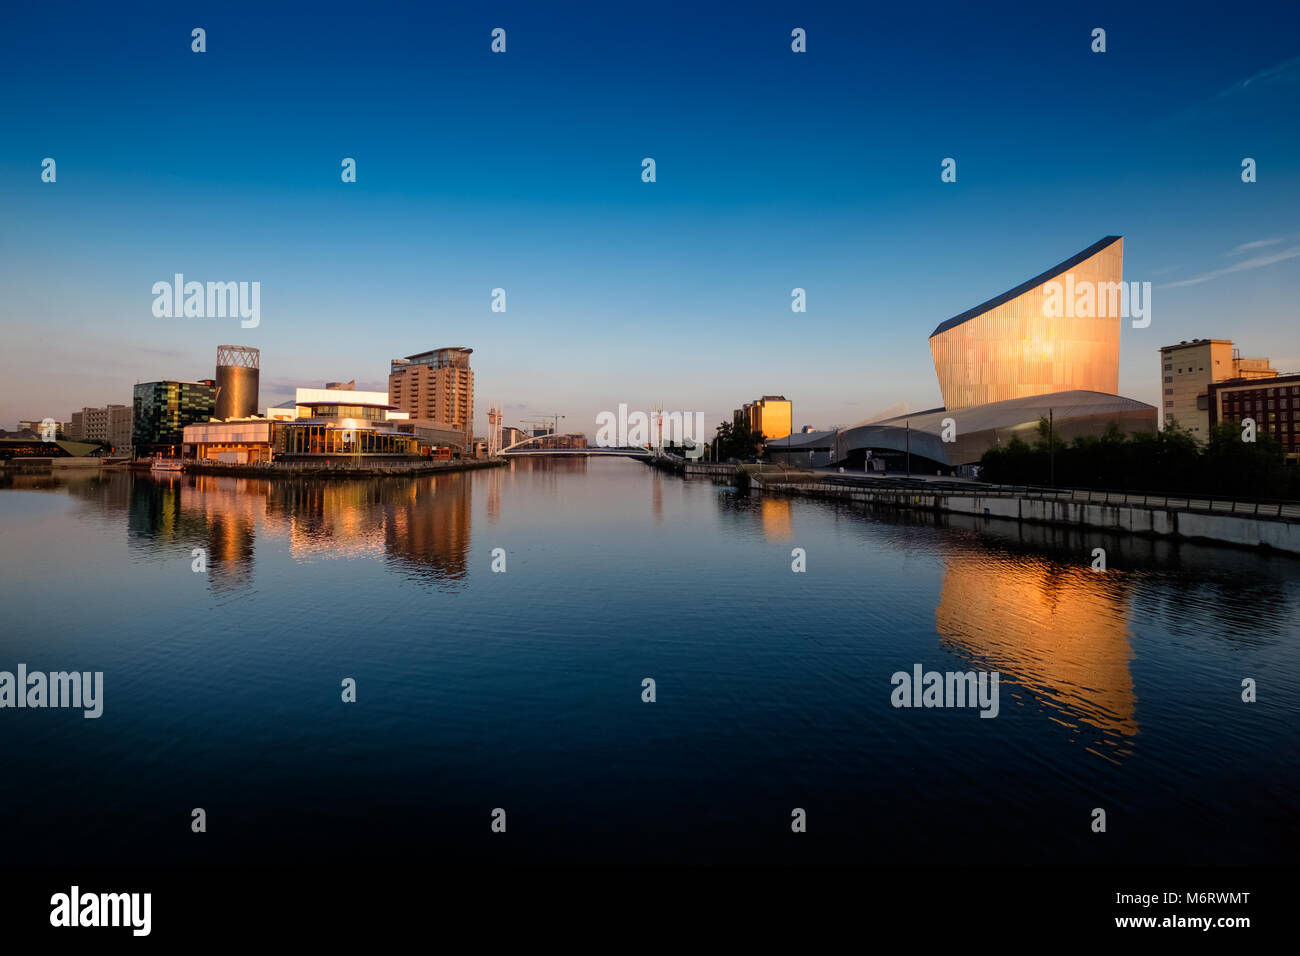 Lowry Centre at Salford Quays and Imperial War Museum on the Manchester ship canal - Stock Image